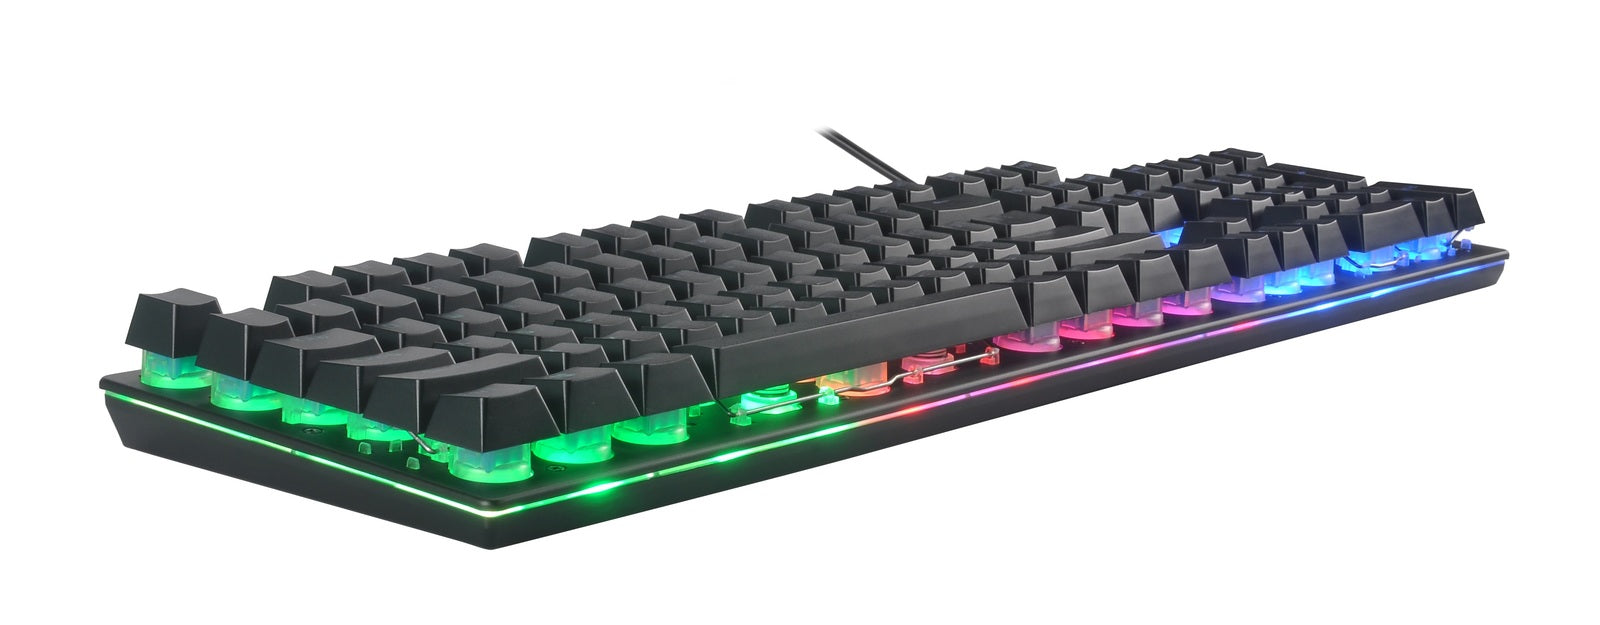 PowerPlay E-Blue Mechanical-Sense Gaming Keyboard - PC Games